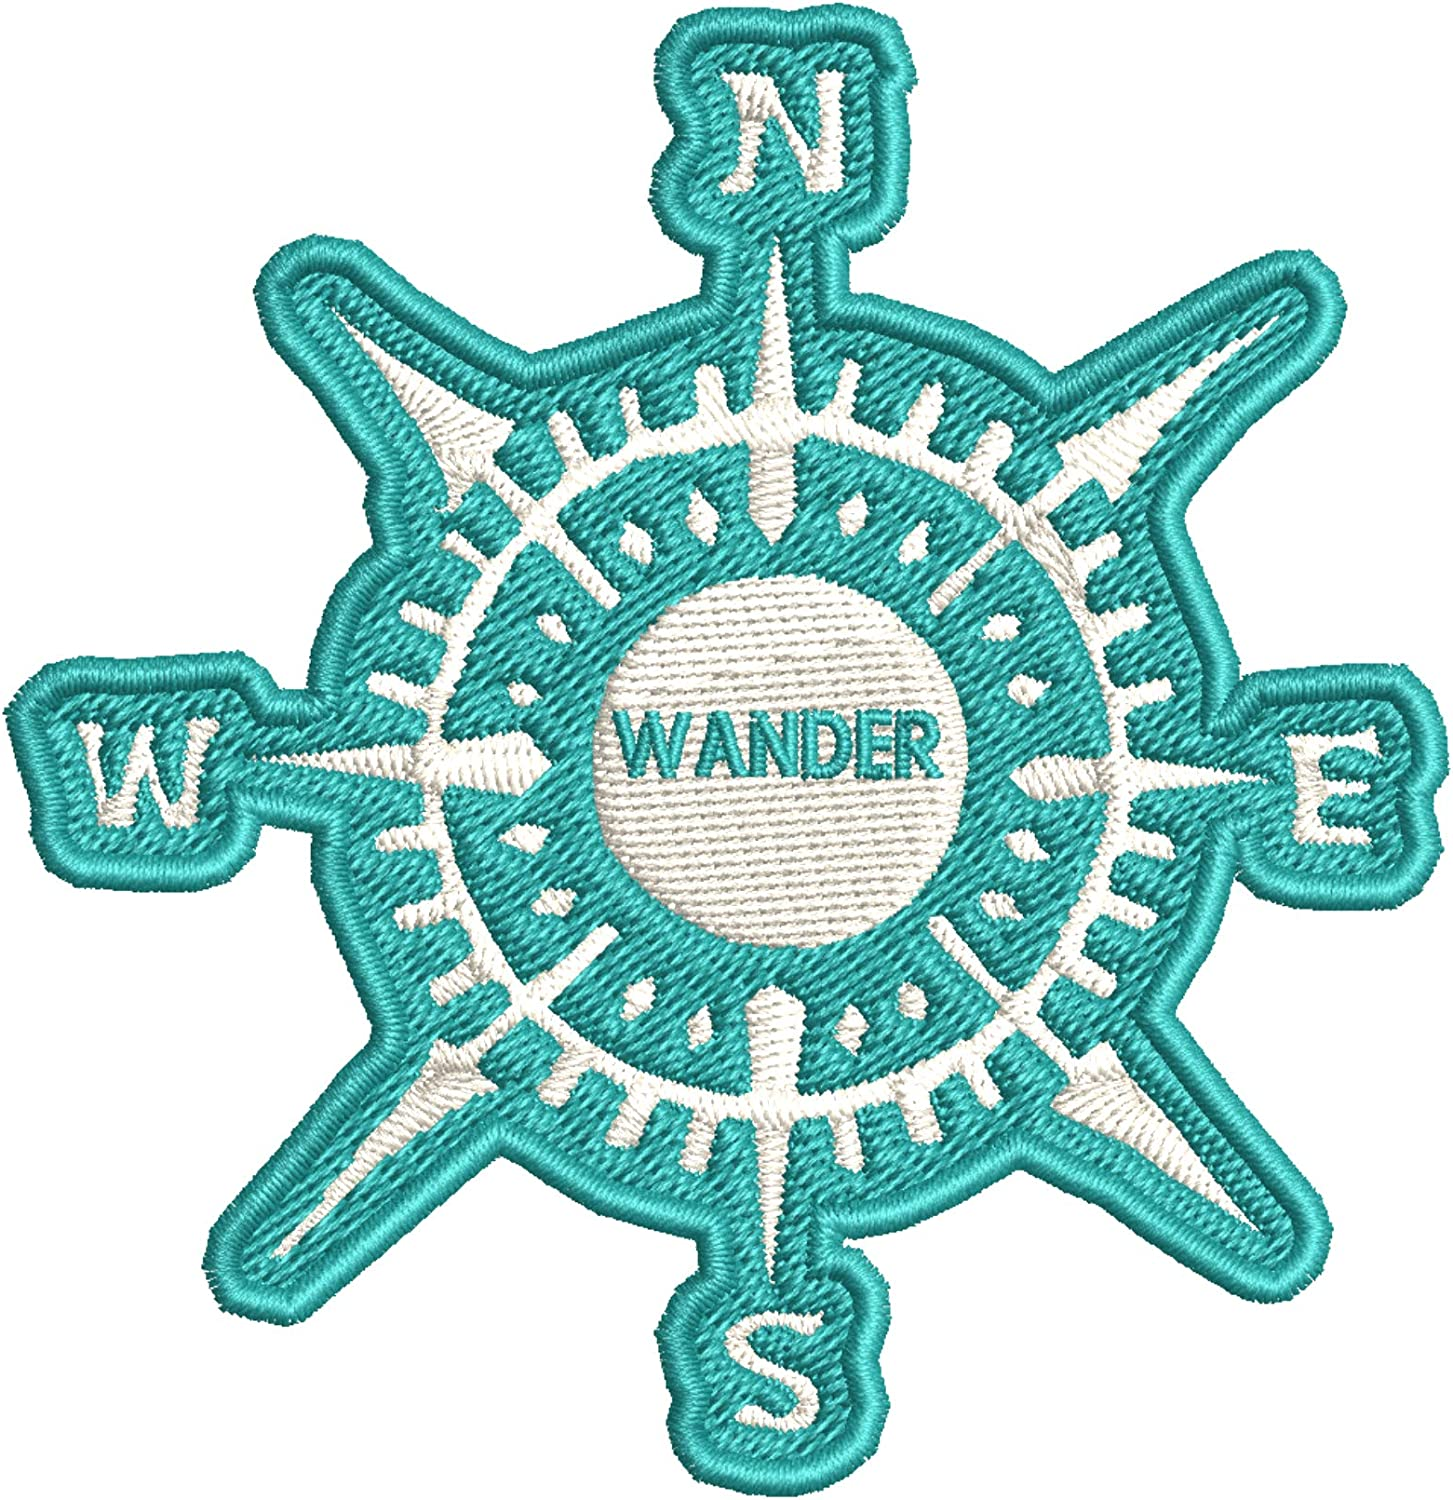 COMPASS WANDER Embroidered Patch Iron-On Sew-On Decorative Applique